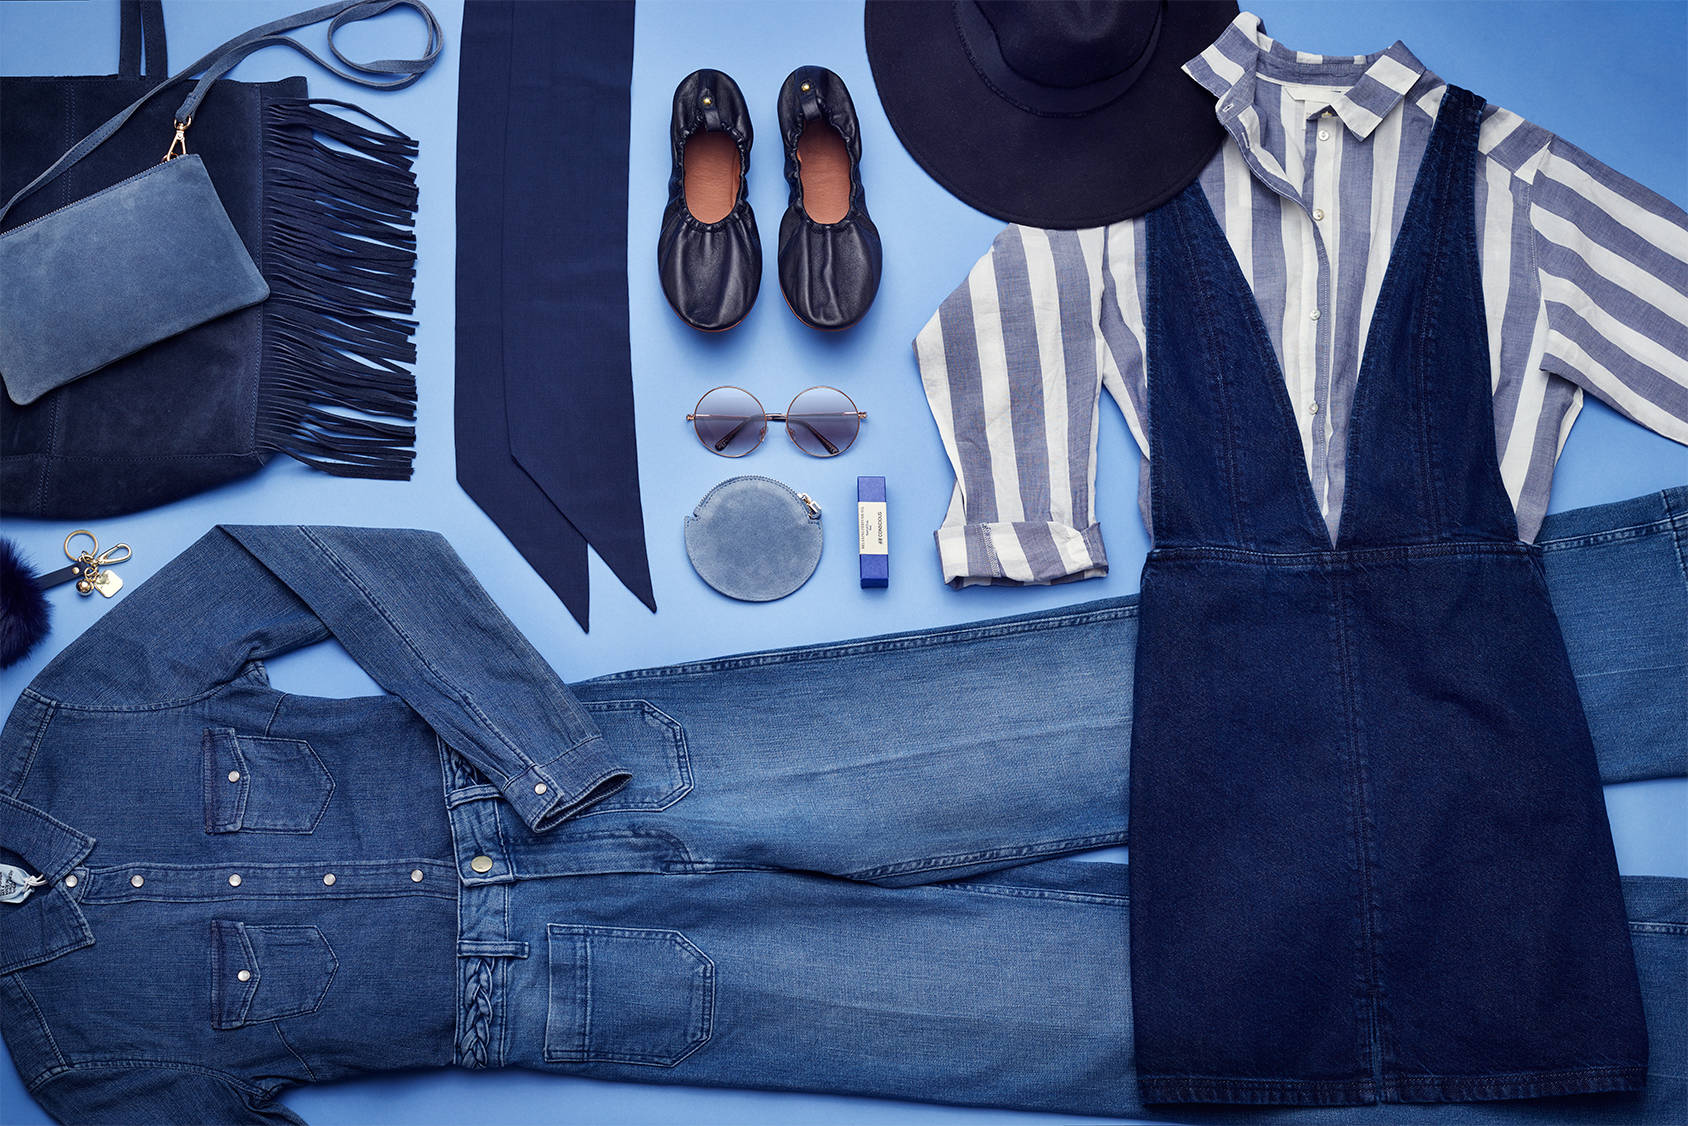 DENIM FOR THE NEW SEASON